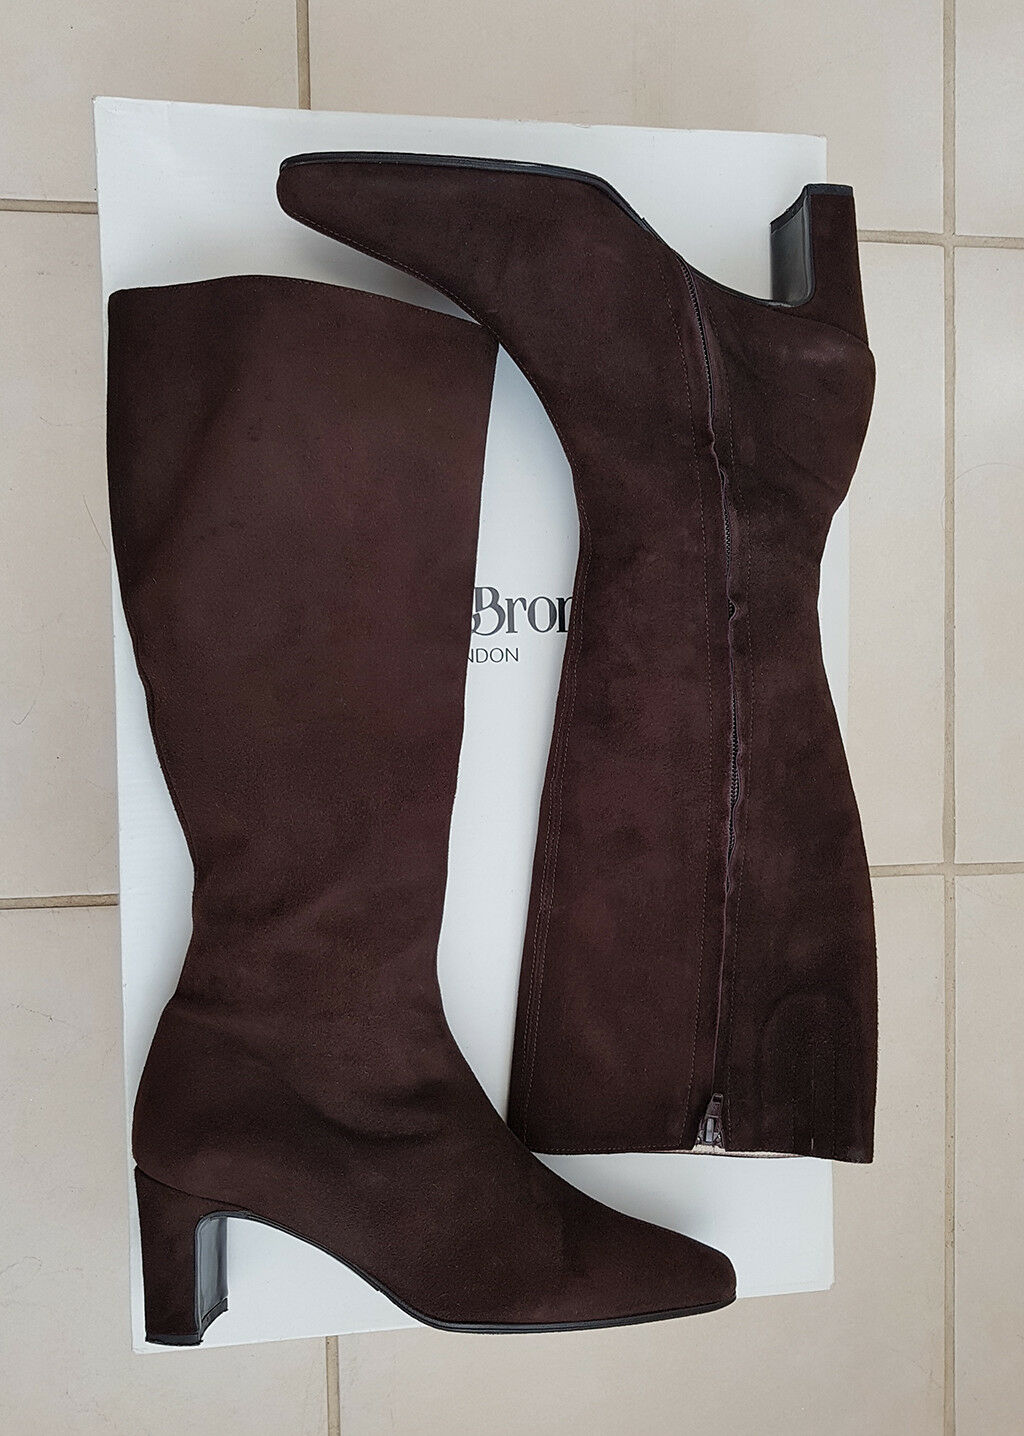 9861b94212b8f9 Russell Russell Russell & Bromley Marron Chocolat Daim Bottes Longues Cuir  Doublure MADE IN ITALY | élégant c937d8